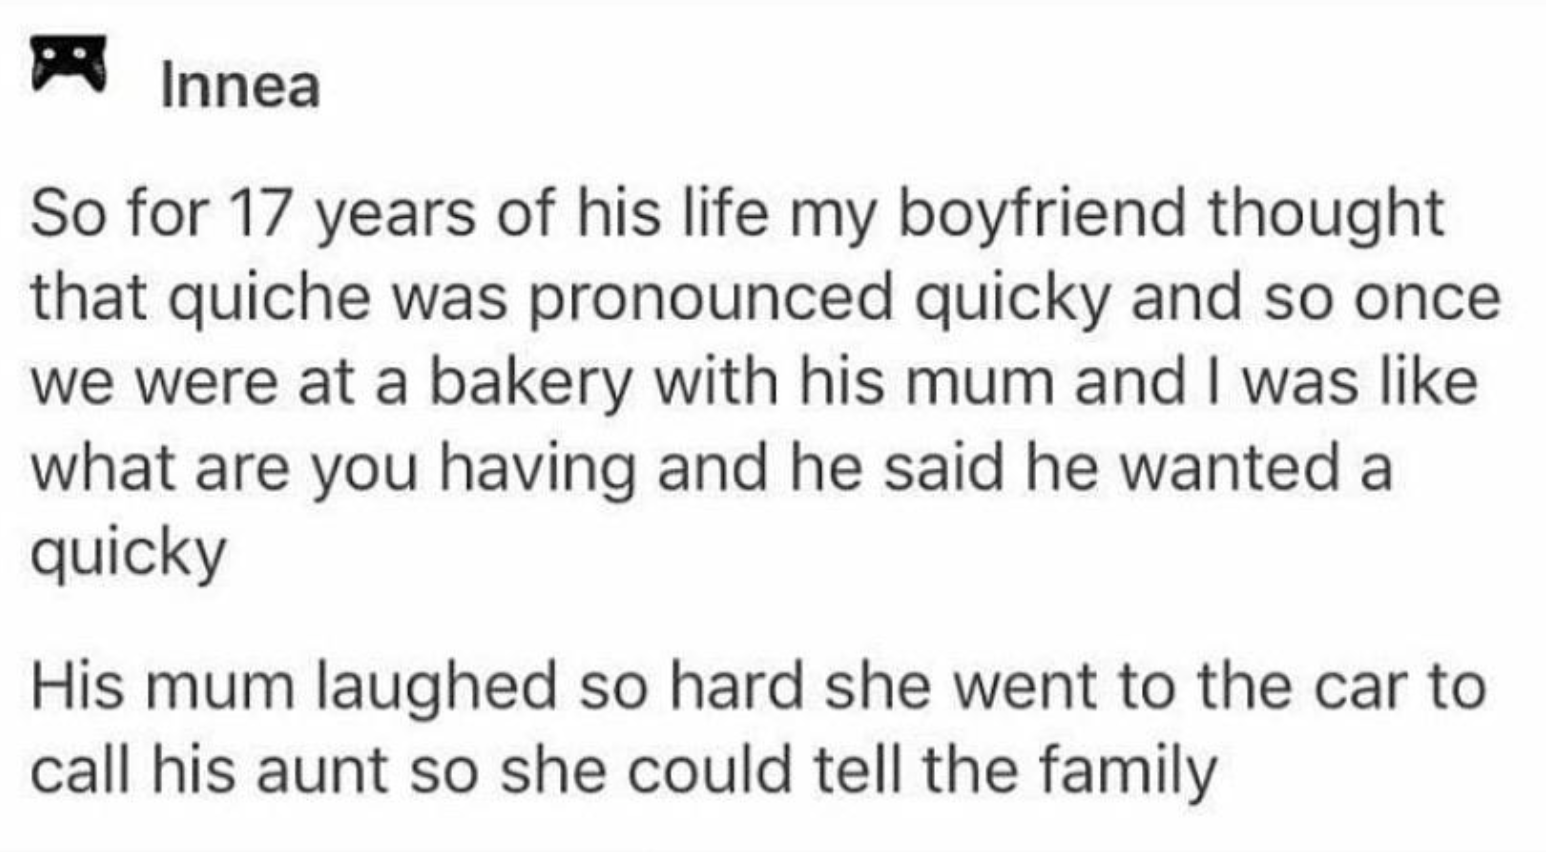 tumblr story about someone thinking quiche is pronounced quicky and them asking their gf for a quicky